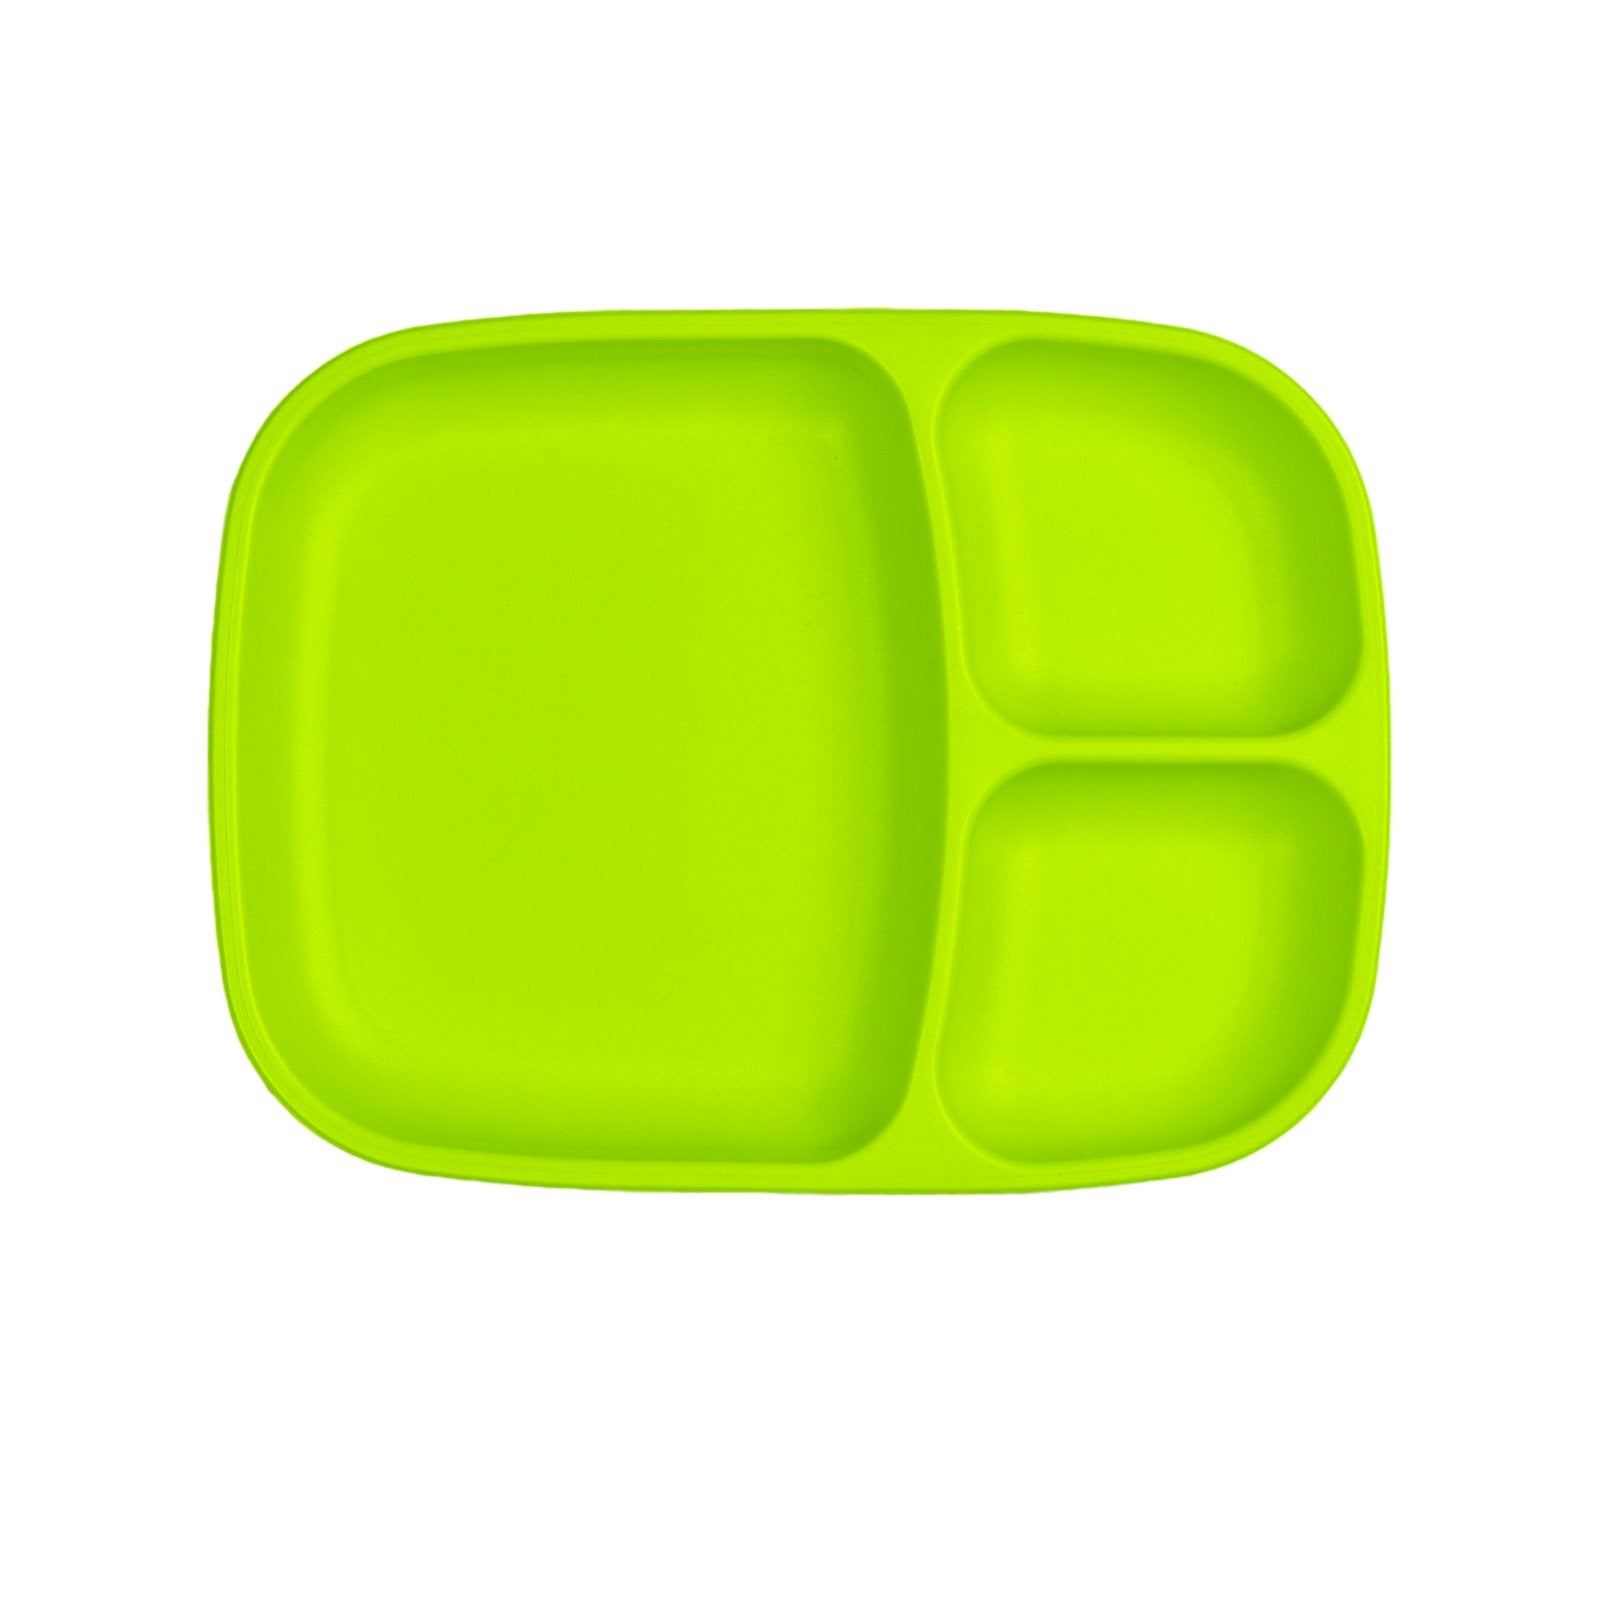 Replay Large Divided Plate Replay Dinnerware Green at Little Earth Nest Eco Shop